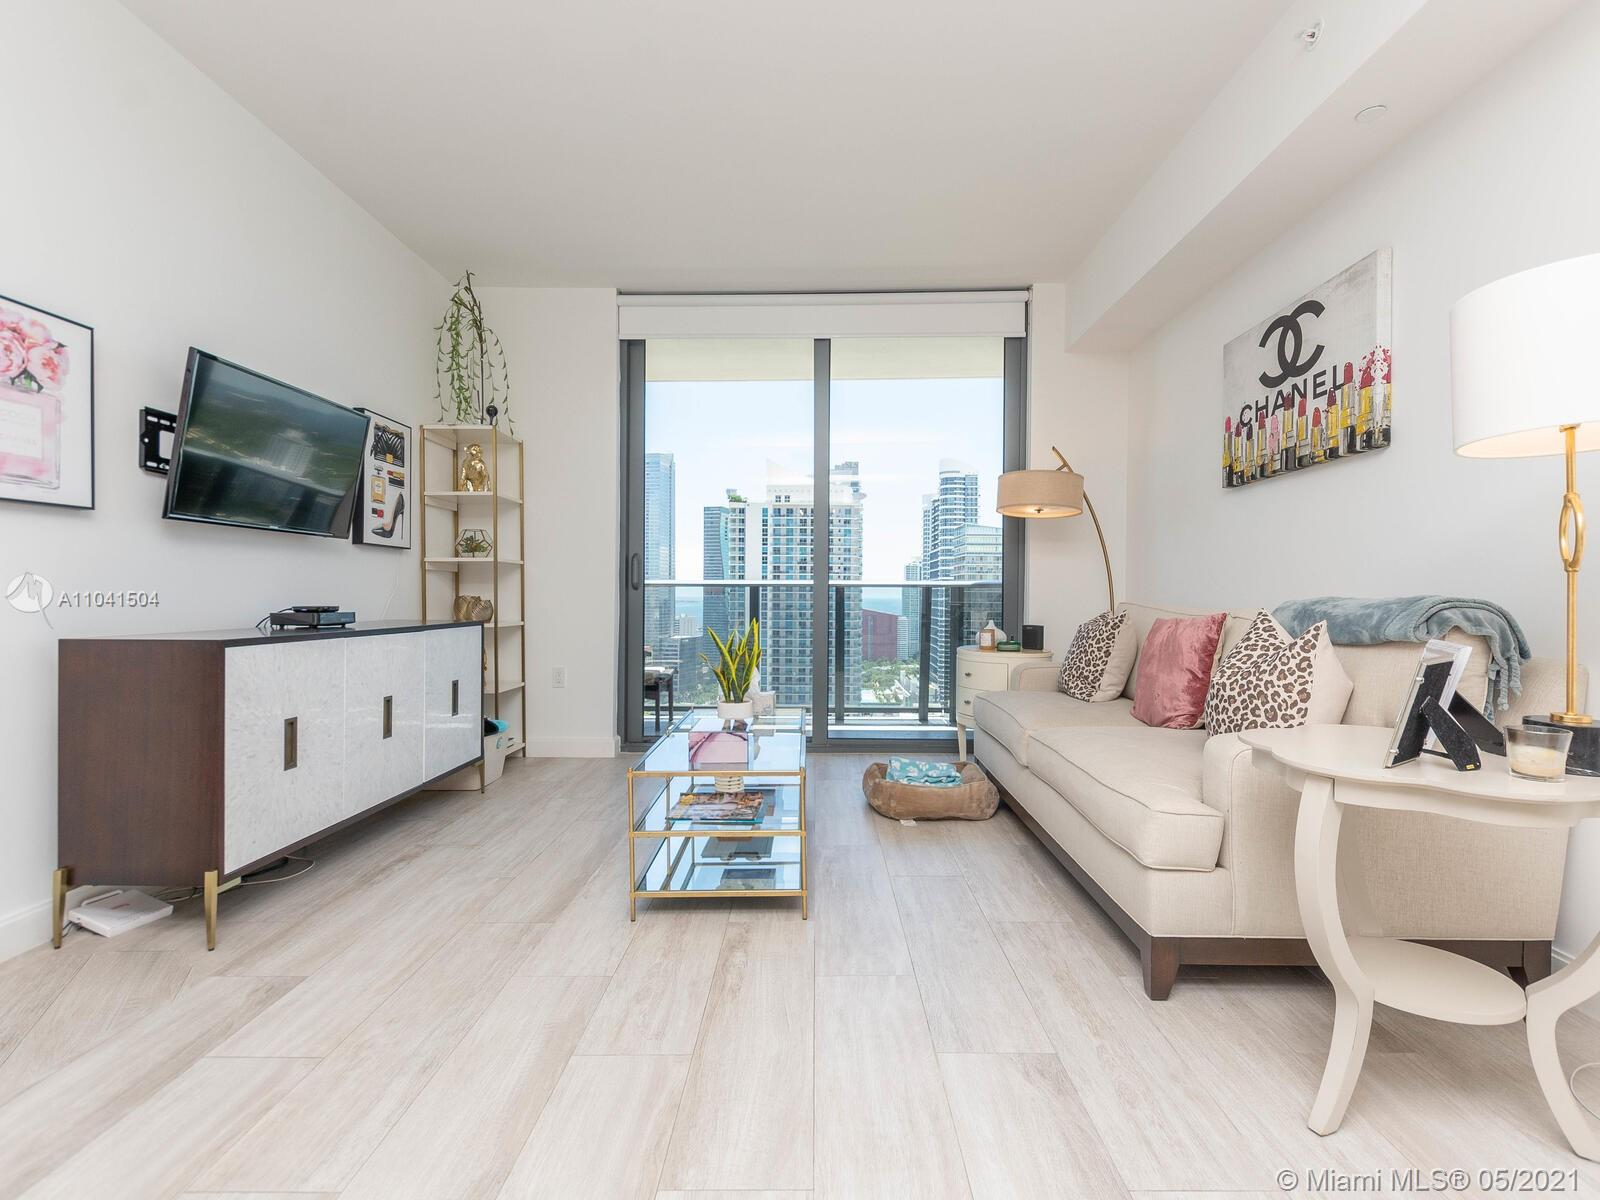 Beautiful and Spacious 1 Bed+DEN and 2 full baths in Brickell Heights Condo, Fantastic view, floor- to-ceiling sliding glass doors, custom ItalKraft kitchen, modern bathrooms have floating vessel white ceramic sinks with Quartz counter tops. 3 POOLS IN THE BUILDING: roof top pool +7 floor Pool +gym pool, Aquitectonica design, surrounded by the best restaurants and Brickell shopping center, residents lounge, kids room, media room (cinema).